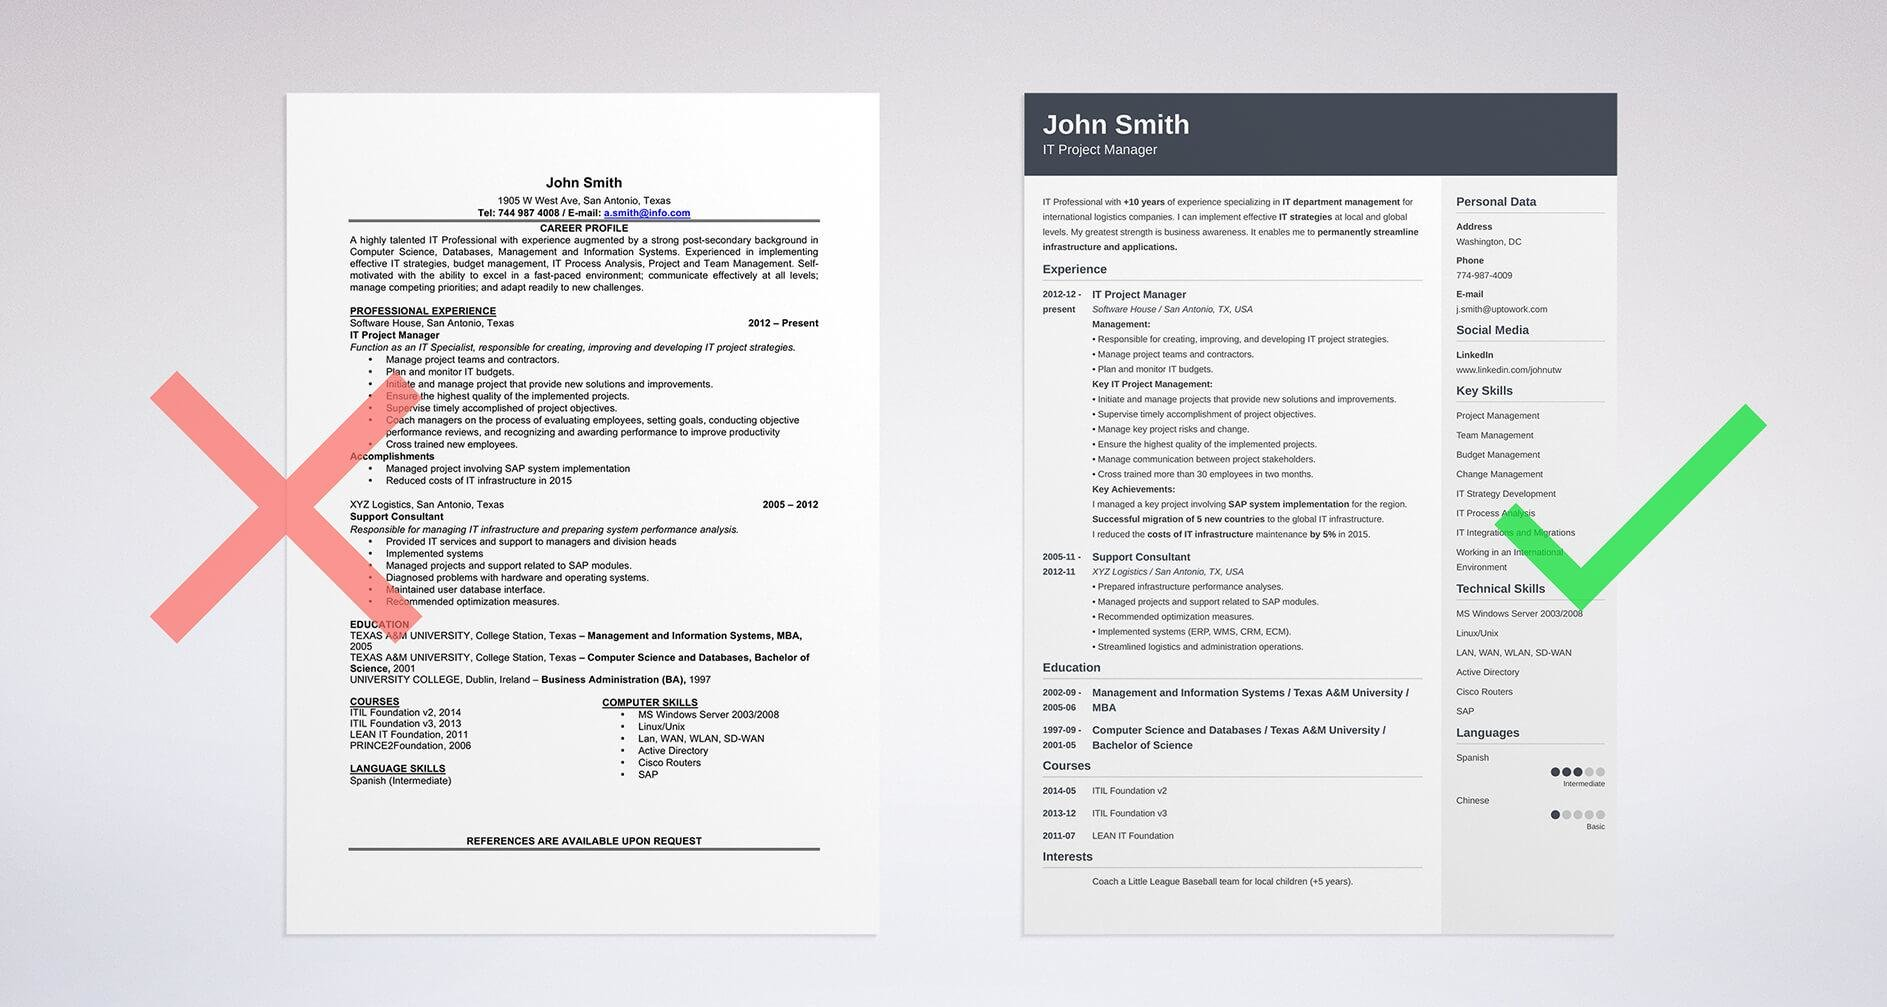 emailing resume job application email samples for submission to get more jobs rmit help Resume Email For Resume Submission Samples